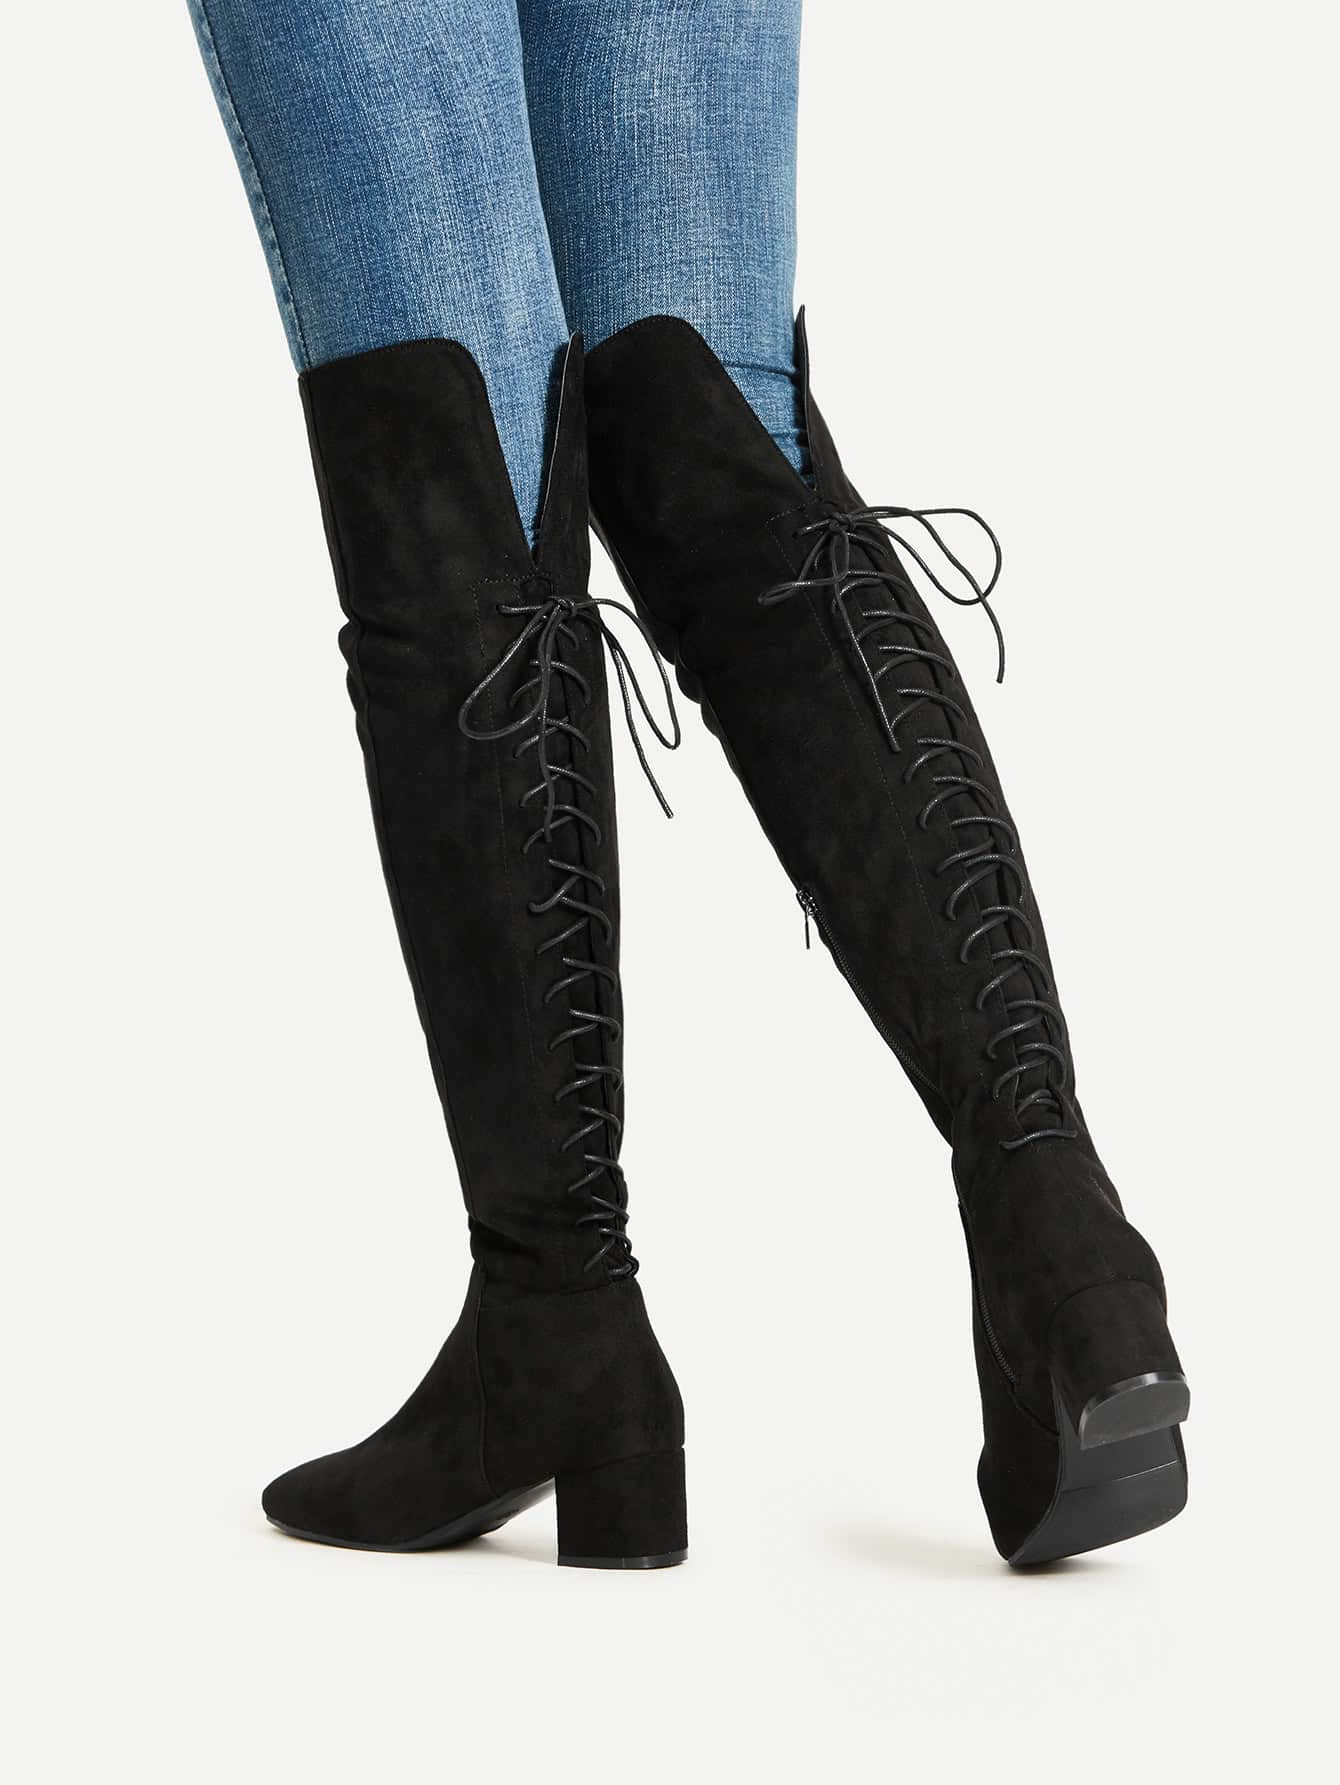 Lace Up Over The Knee Boots shoes170811805